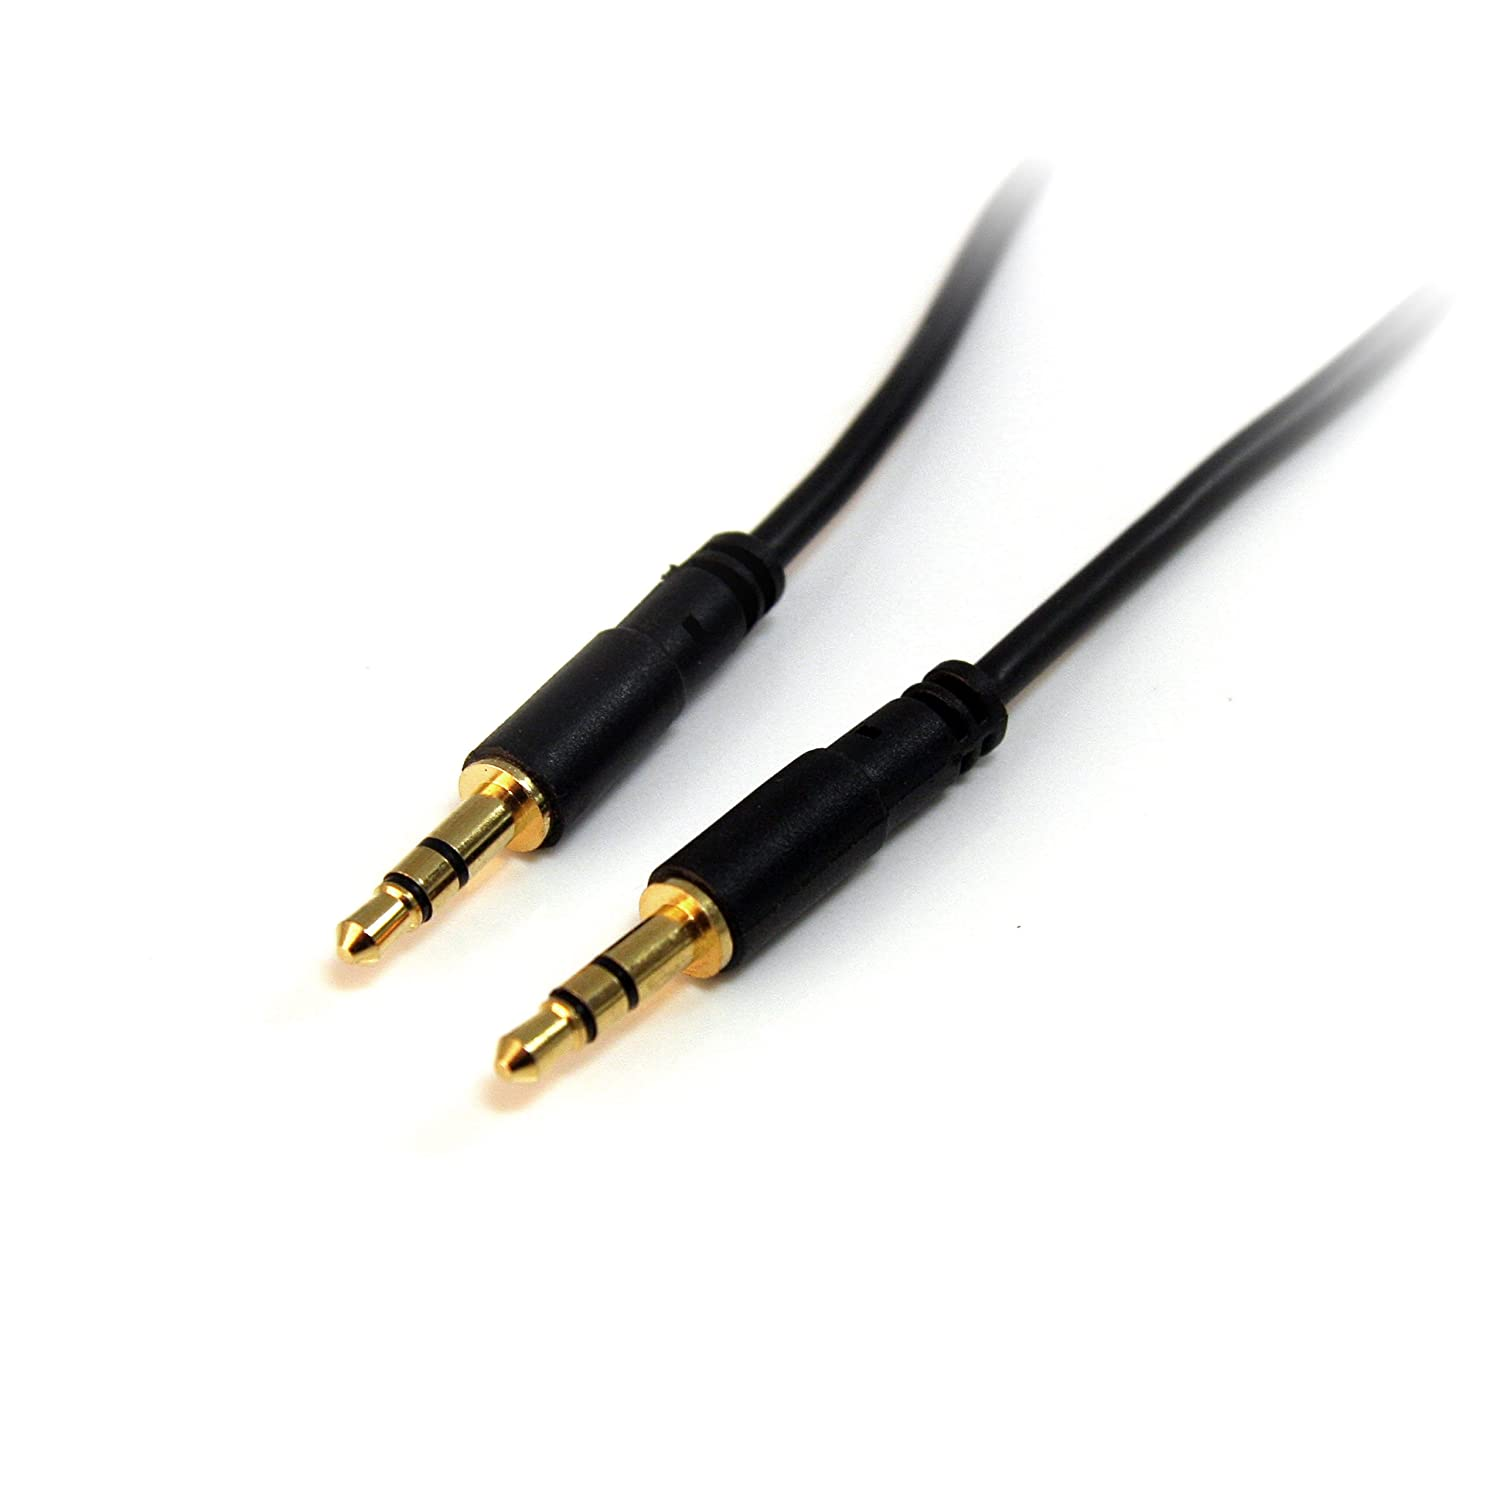 Amazon.com: StarTech.com 3 ft Slim 3.5mm Right Angle Stereo Audio Cable - M/M: Home Audio & Theater